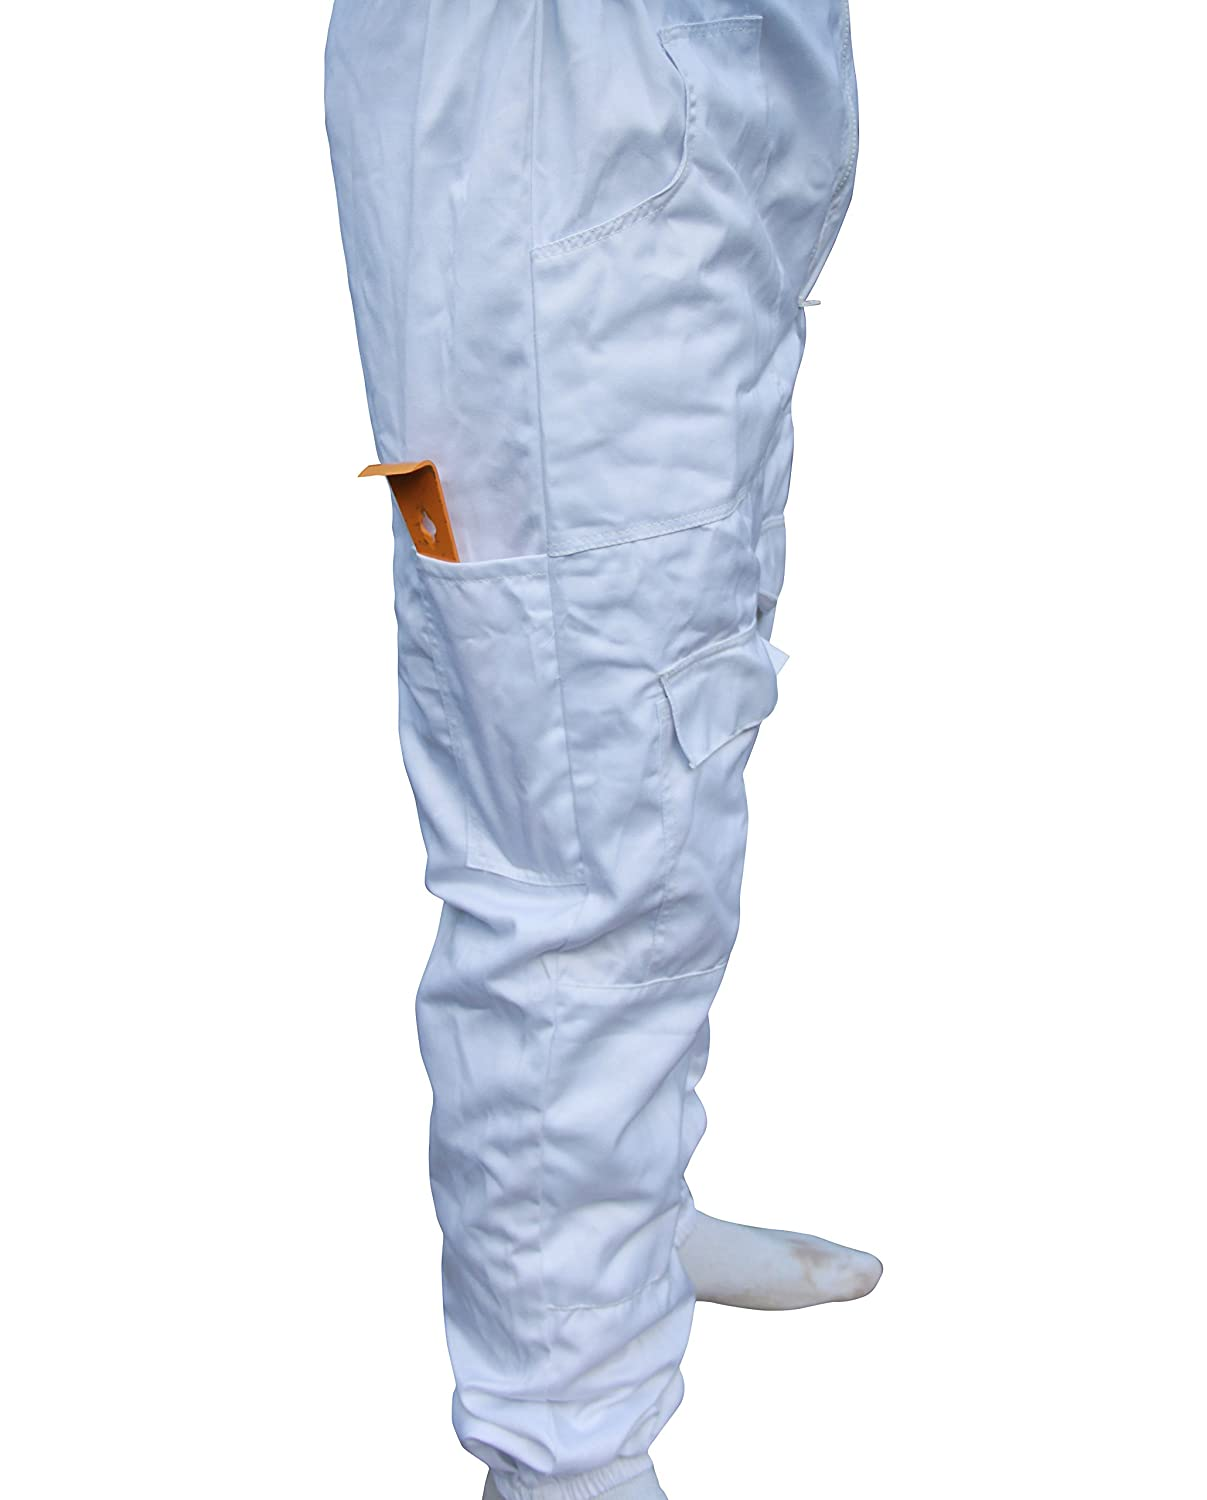 All Sizes White Beekeepers Bee Suit with Fencing Veil 2XL